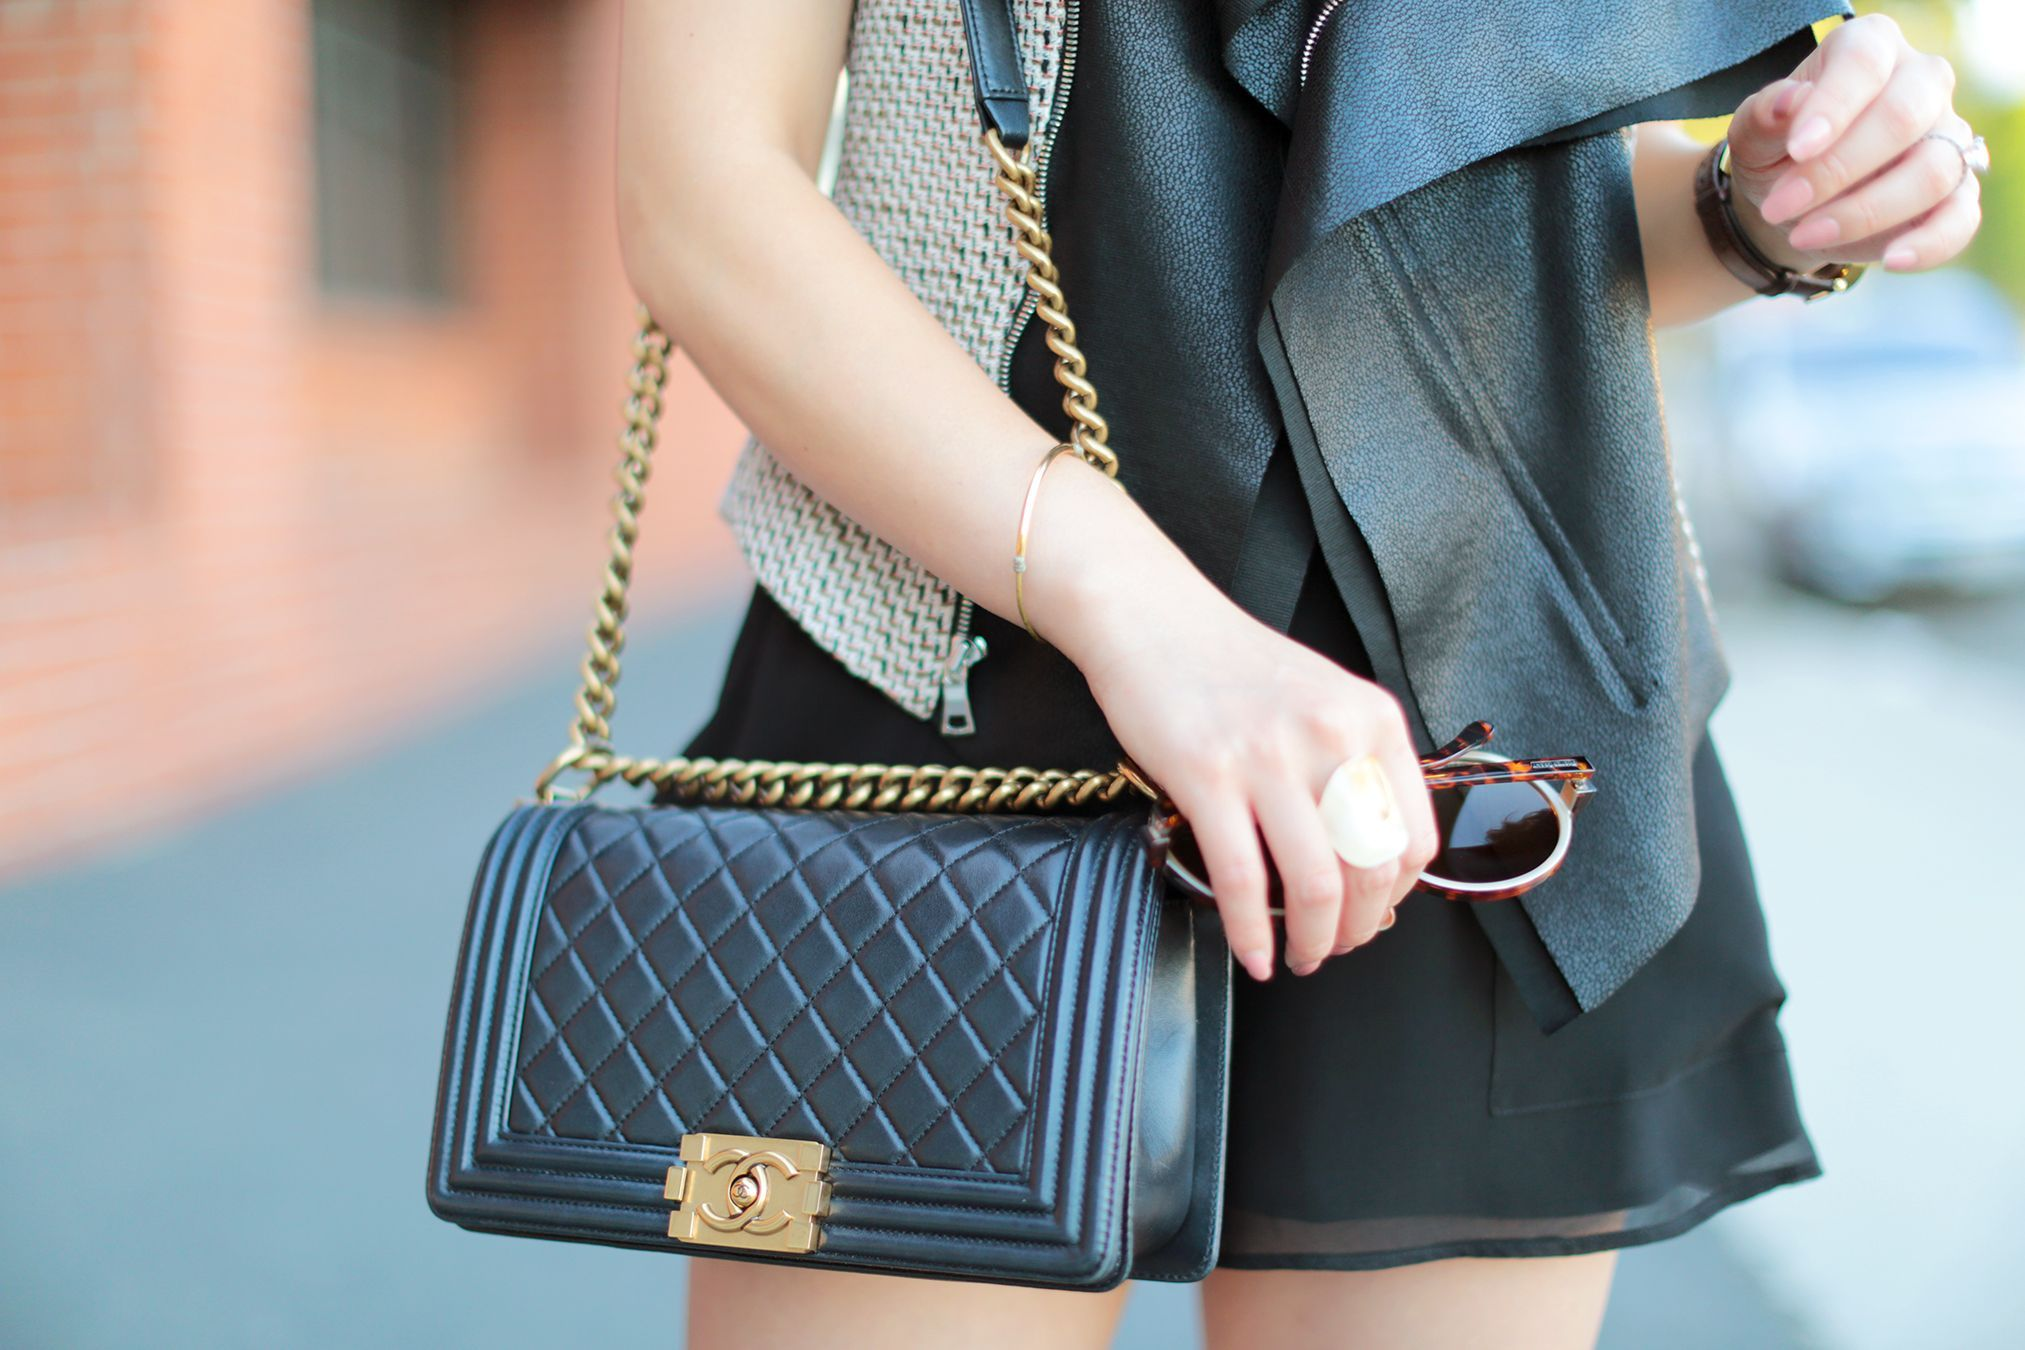 To acquire Black Chanel bag reference guide pictures trends